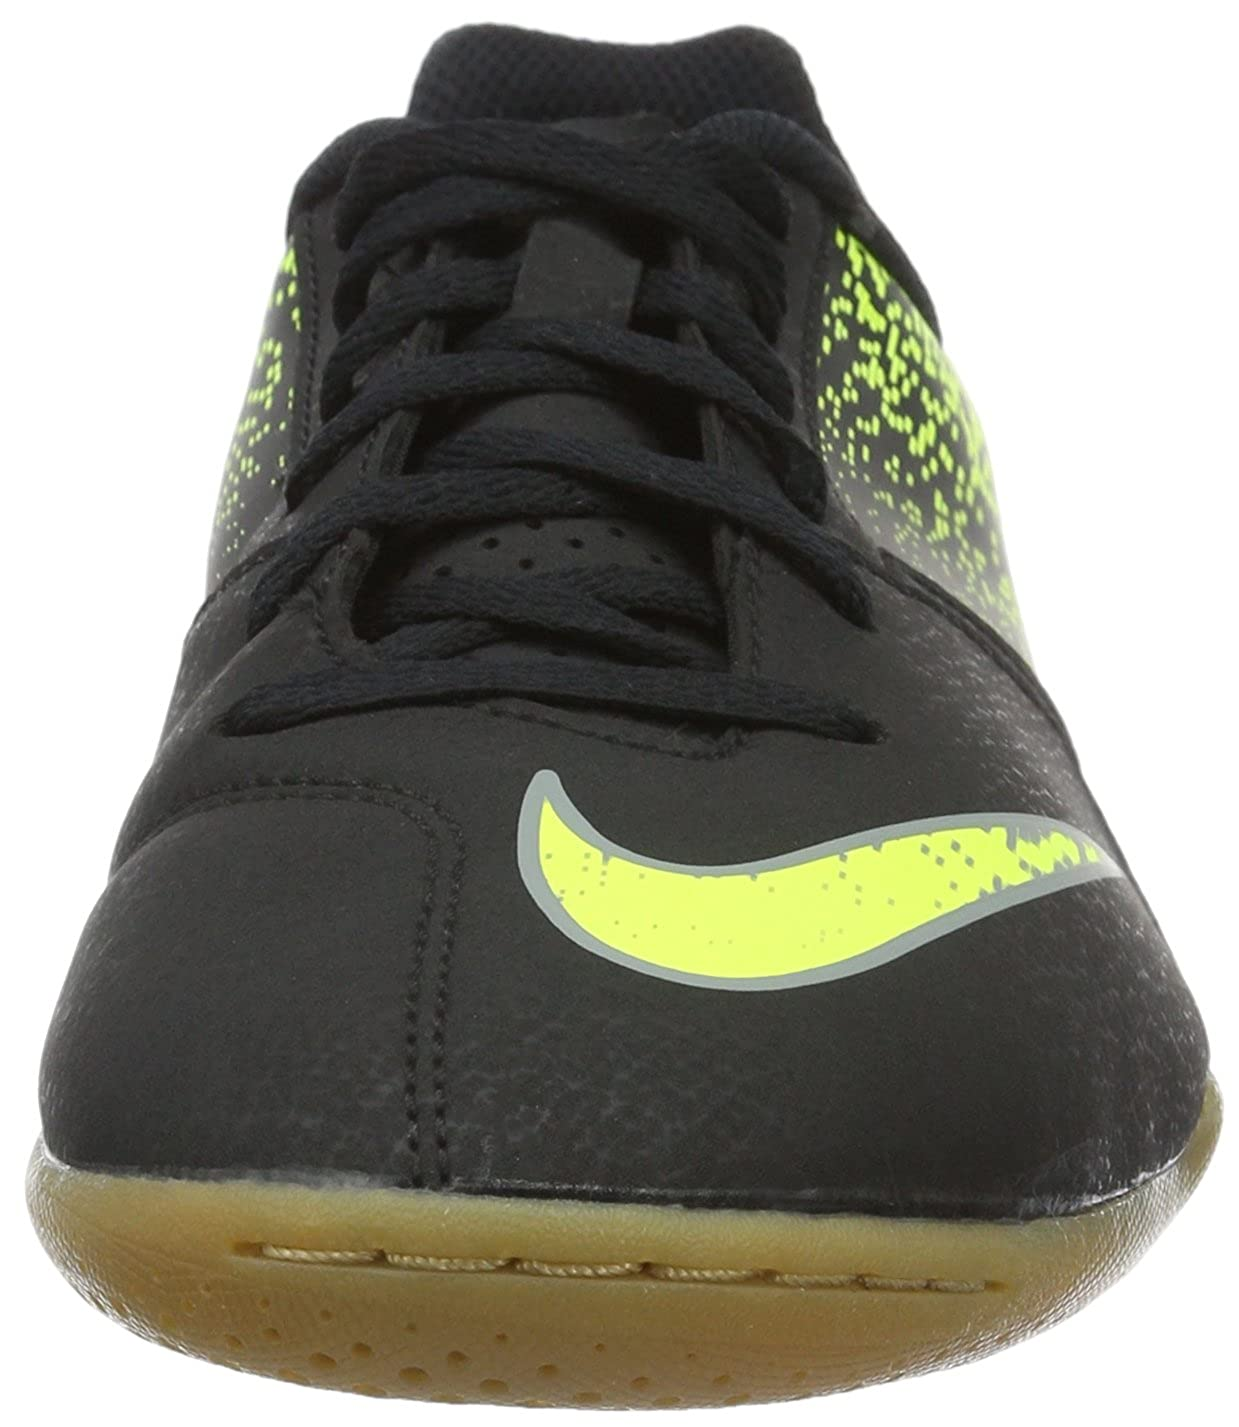 Amazon.com | Nike Kids Jr. Bombax (IC) Indoor-Competition Football Boot Black/Green | Football